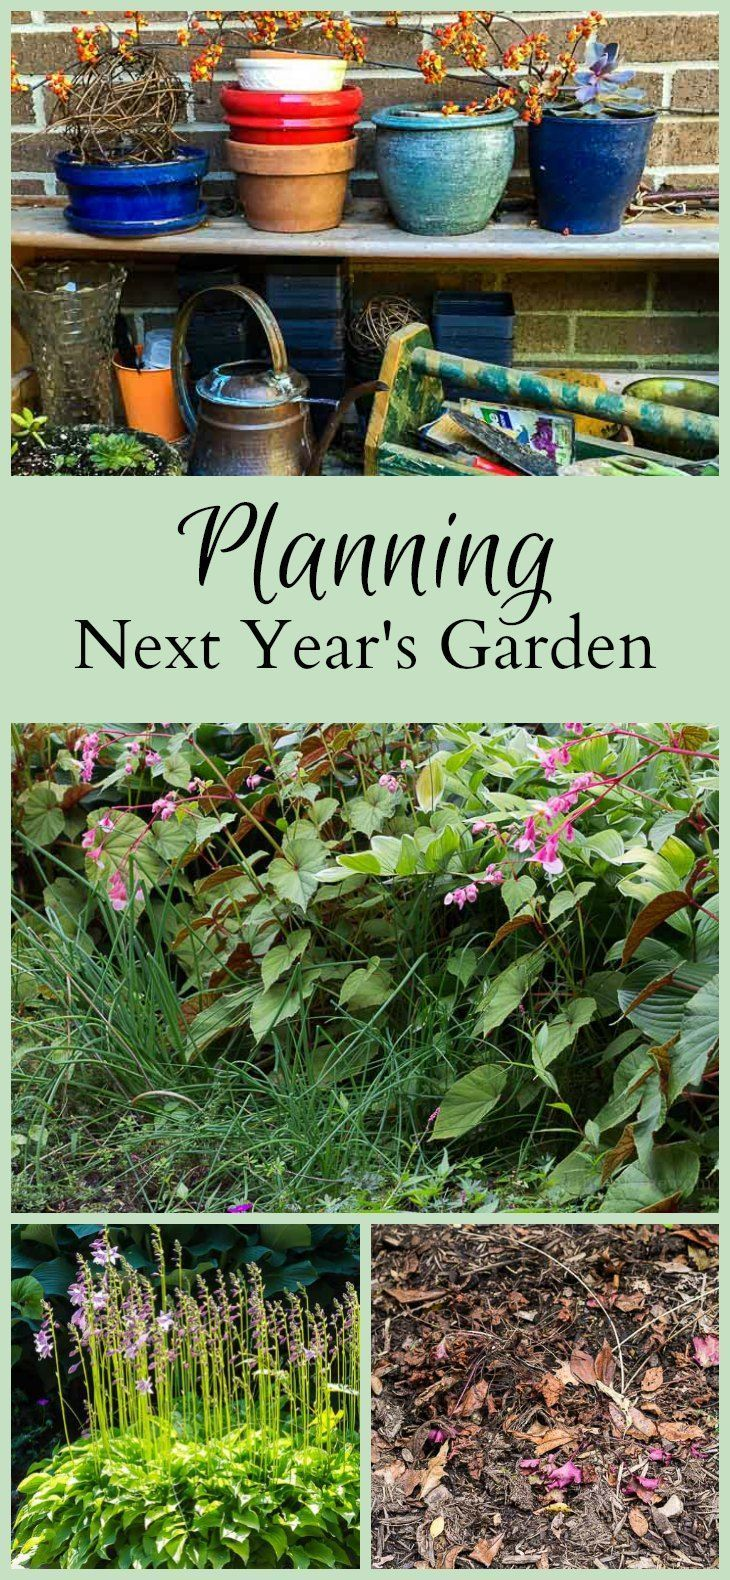 Planning Next Year S Garden Is Something You May Want To Consider